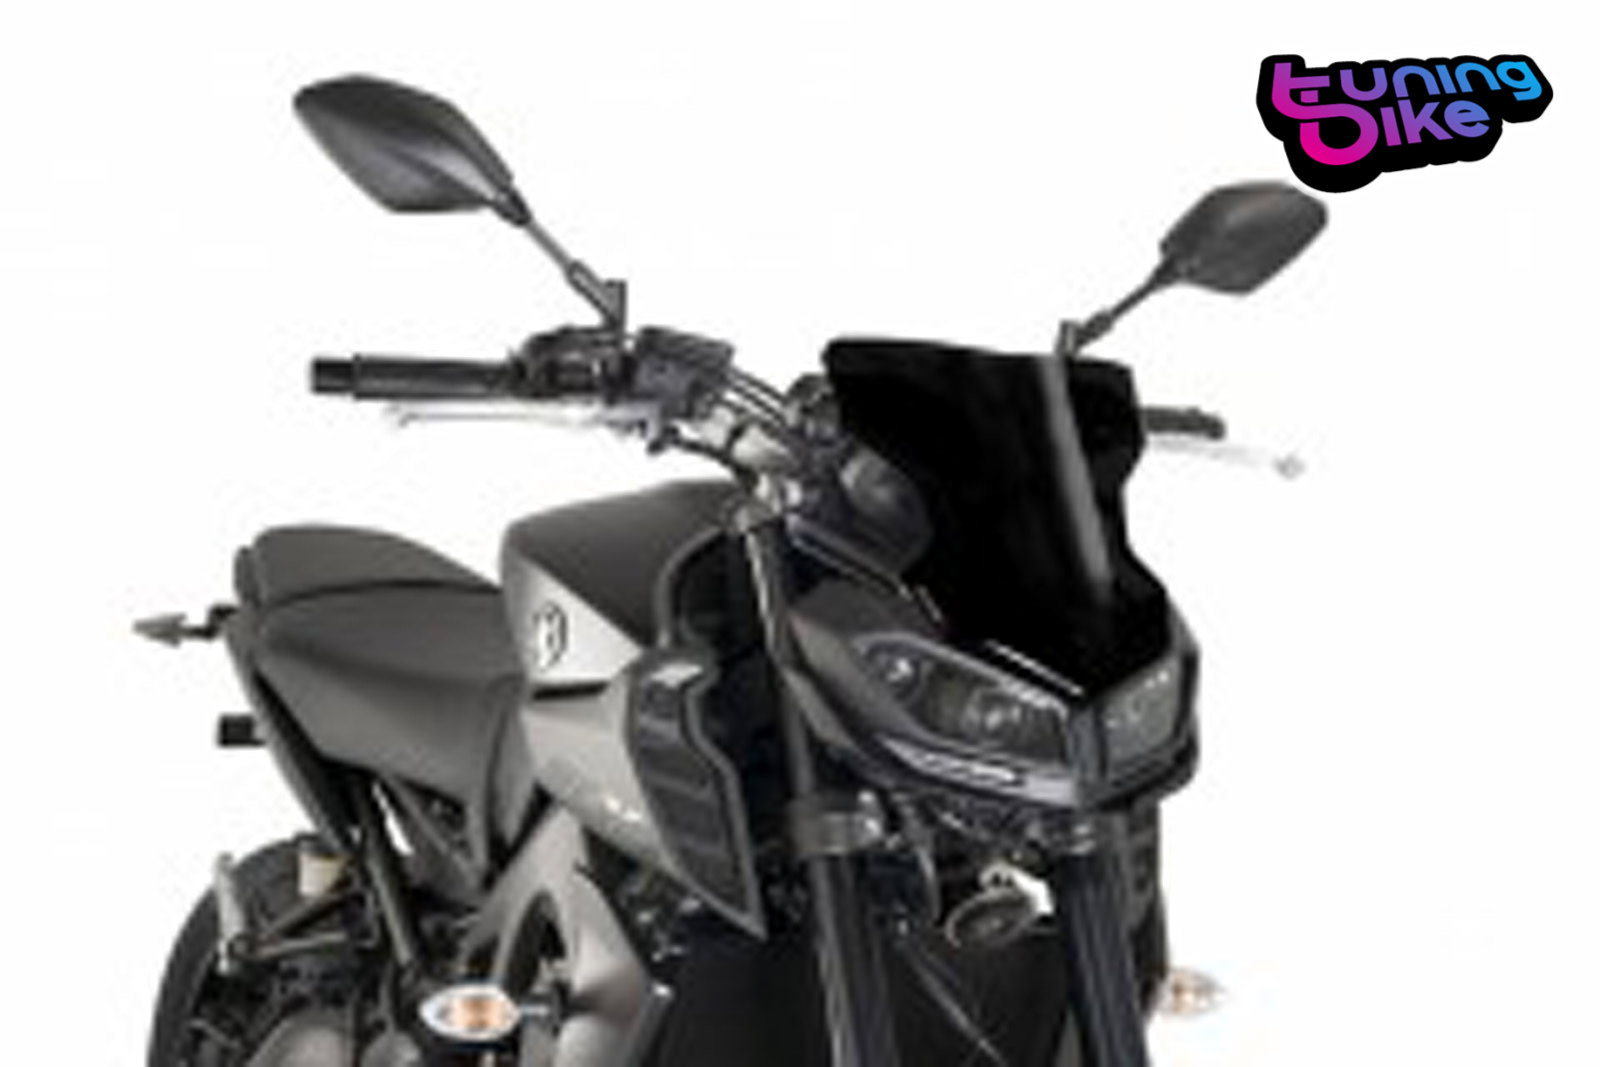 windschild sport puig yamaha mt 09 2017 schwarz ebay. Black Bedroom Furniture Sets. Home Design Ideas